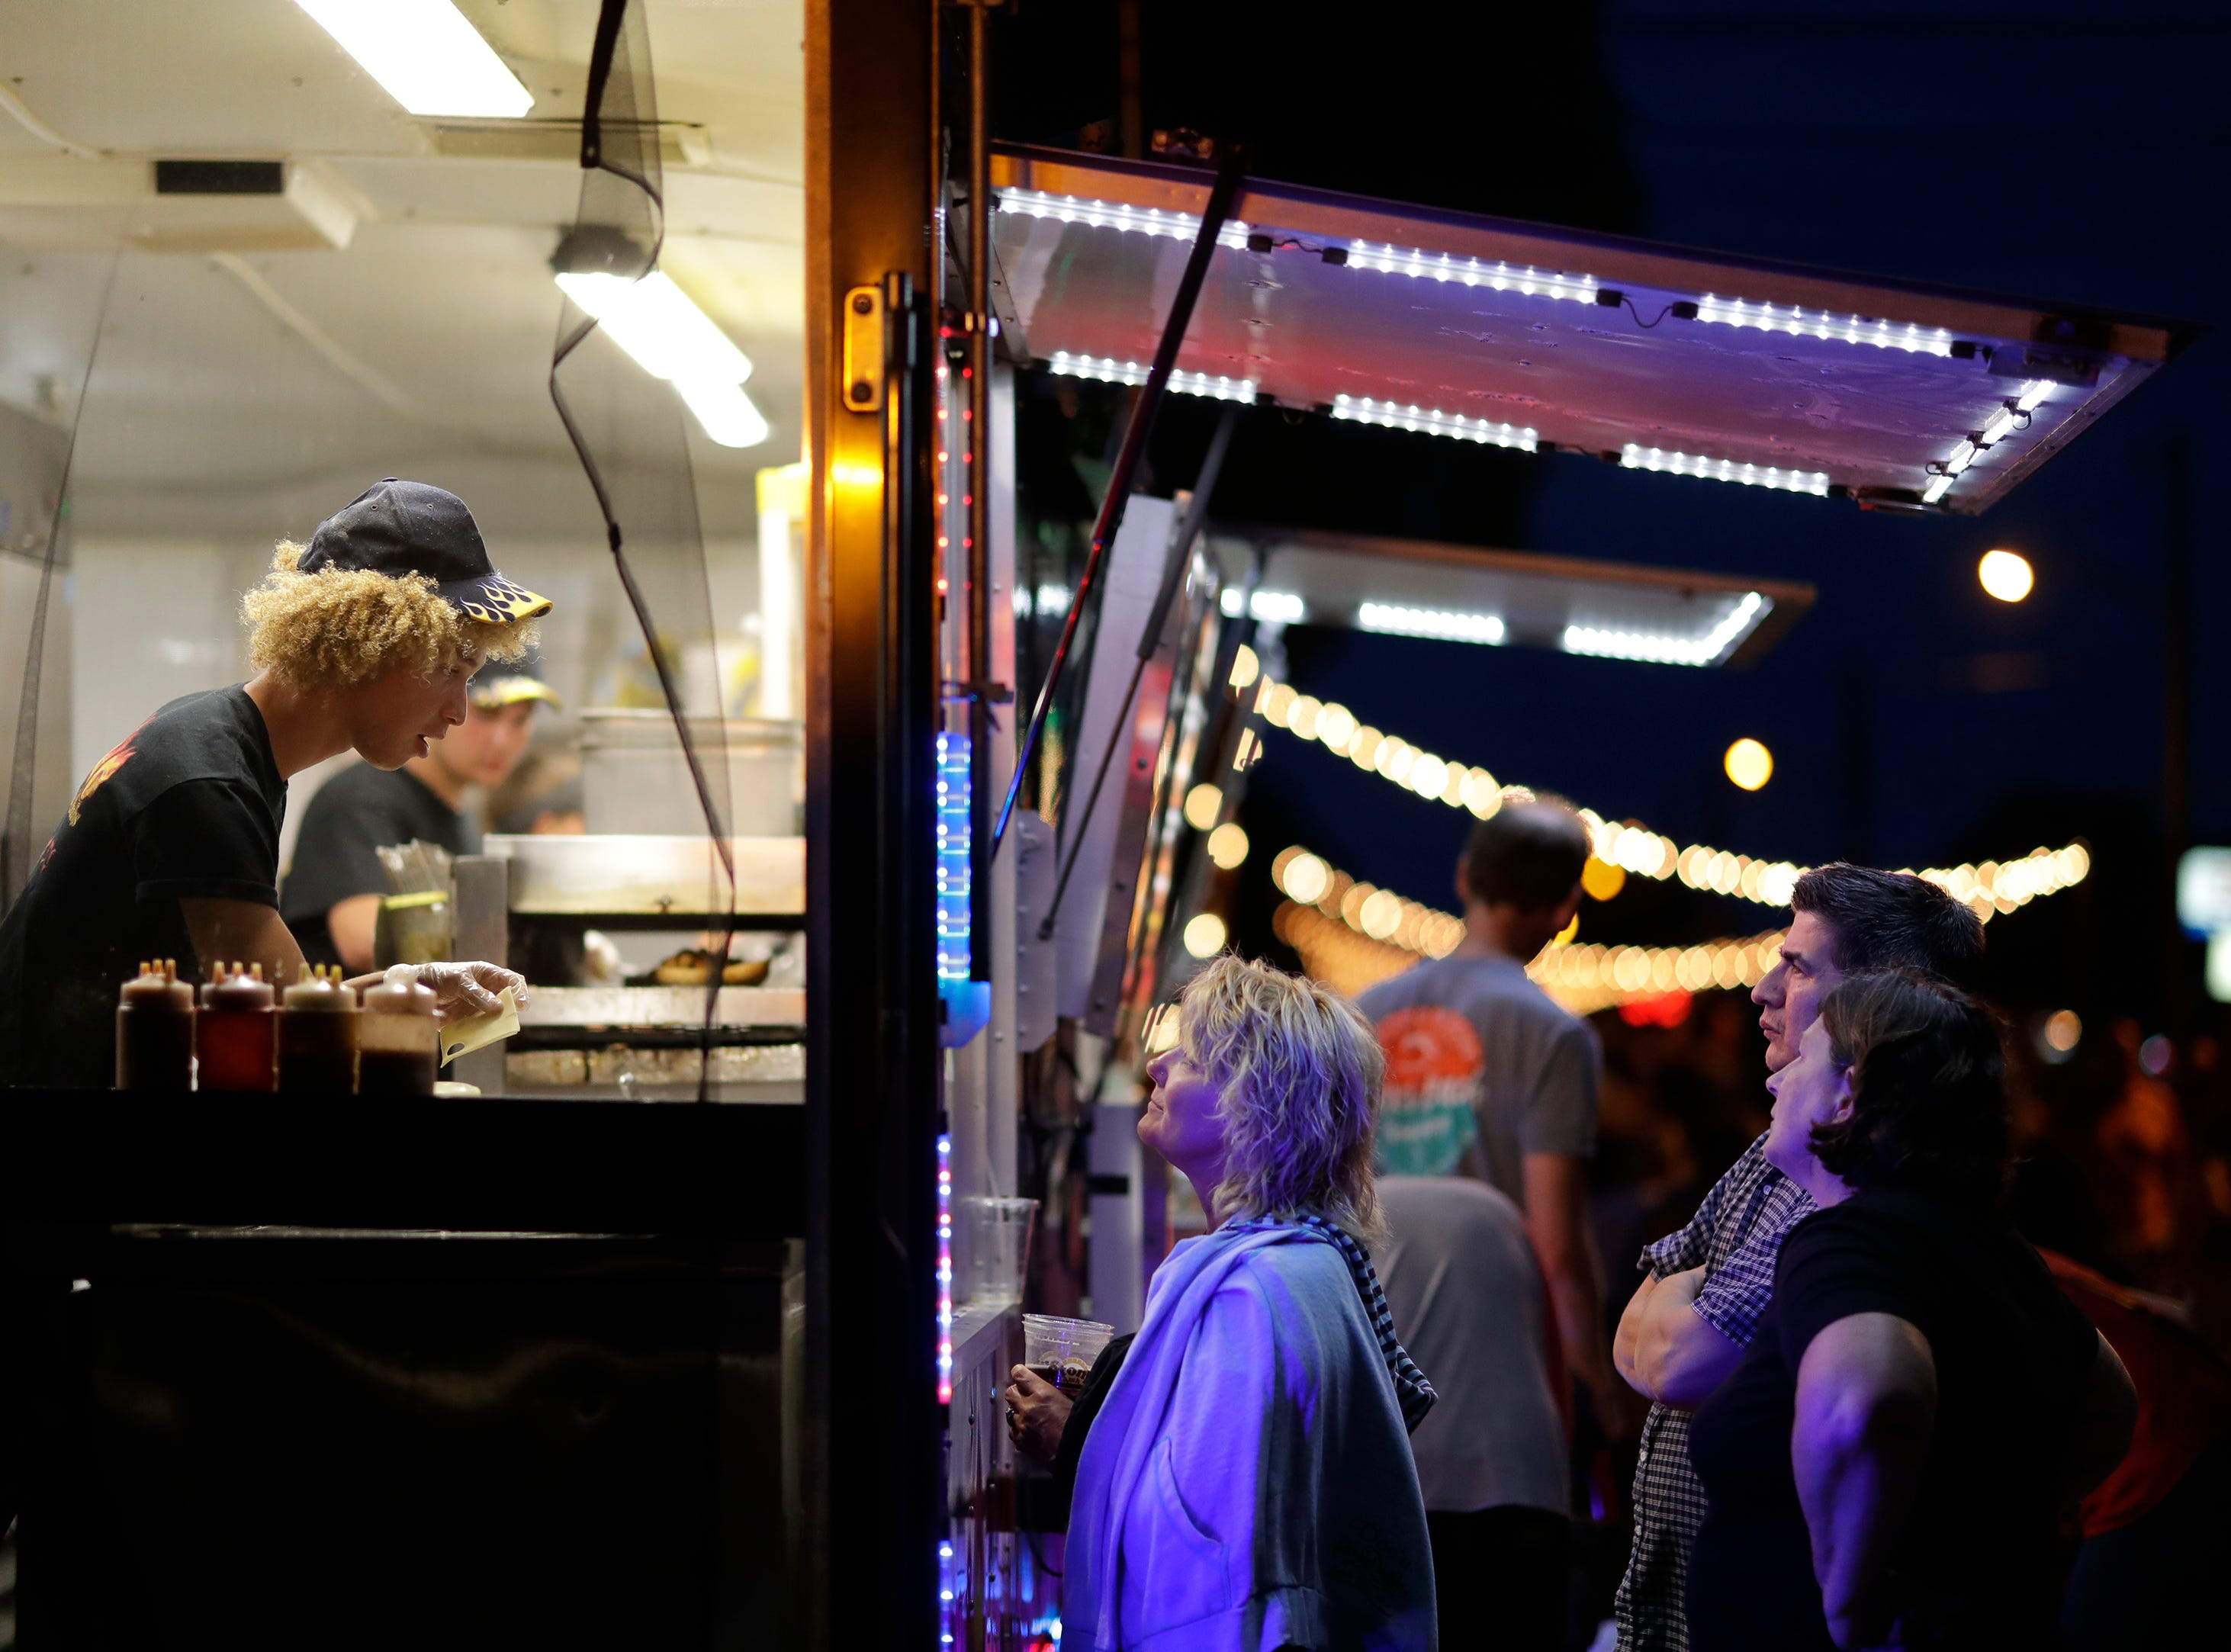 Inferno Gourmet Toasted Subs employee Carston Chancellor, left, of Neenah takes customers orders during Bazaar After Dark Thursday, July 19, 2018, in Neenah, Wis. The event is hosted Pulse Young Professionals Network at the Fox Cities Chamber.